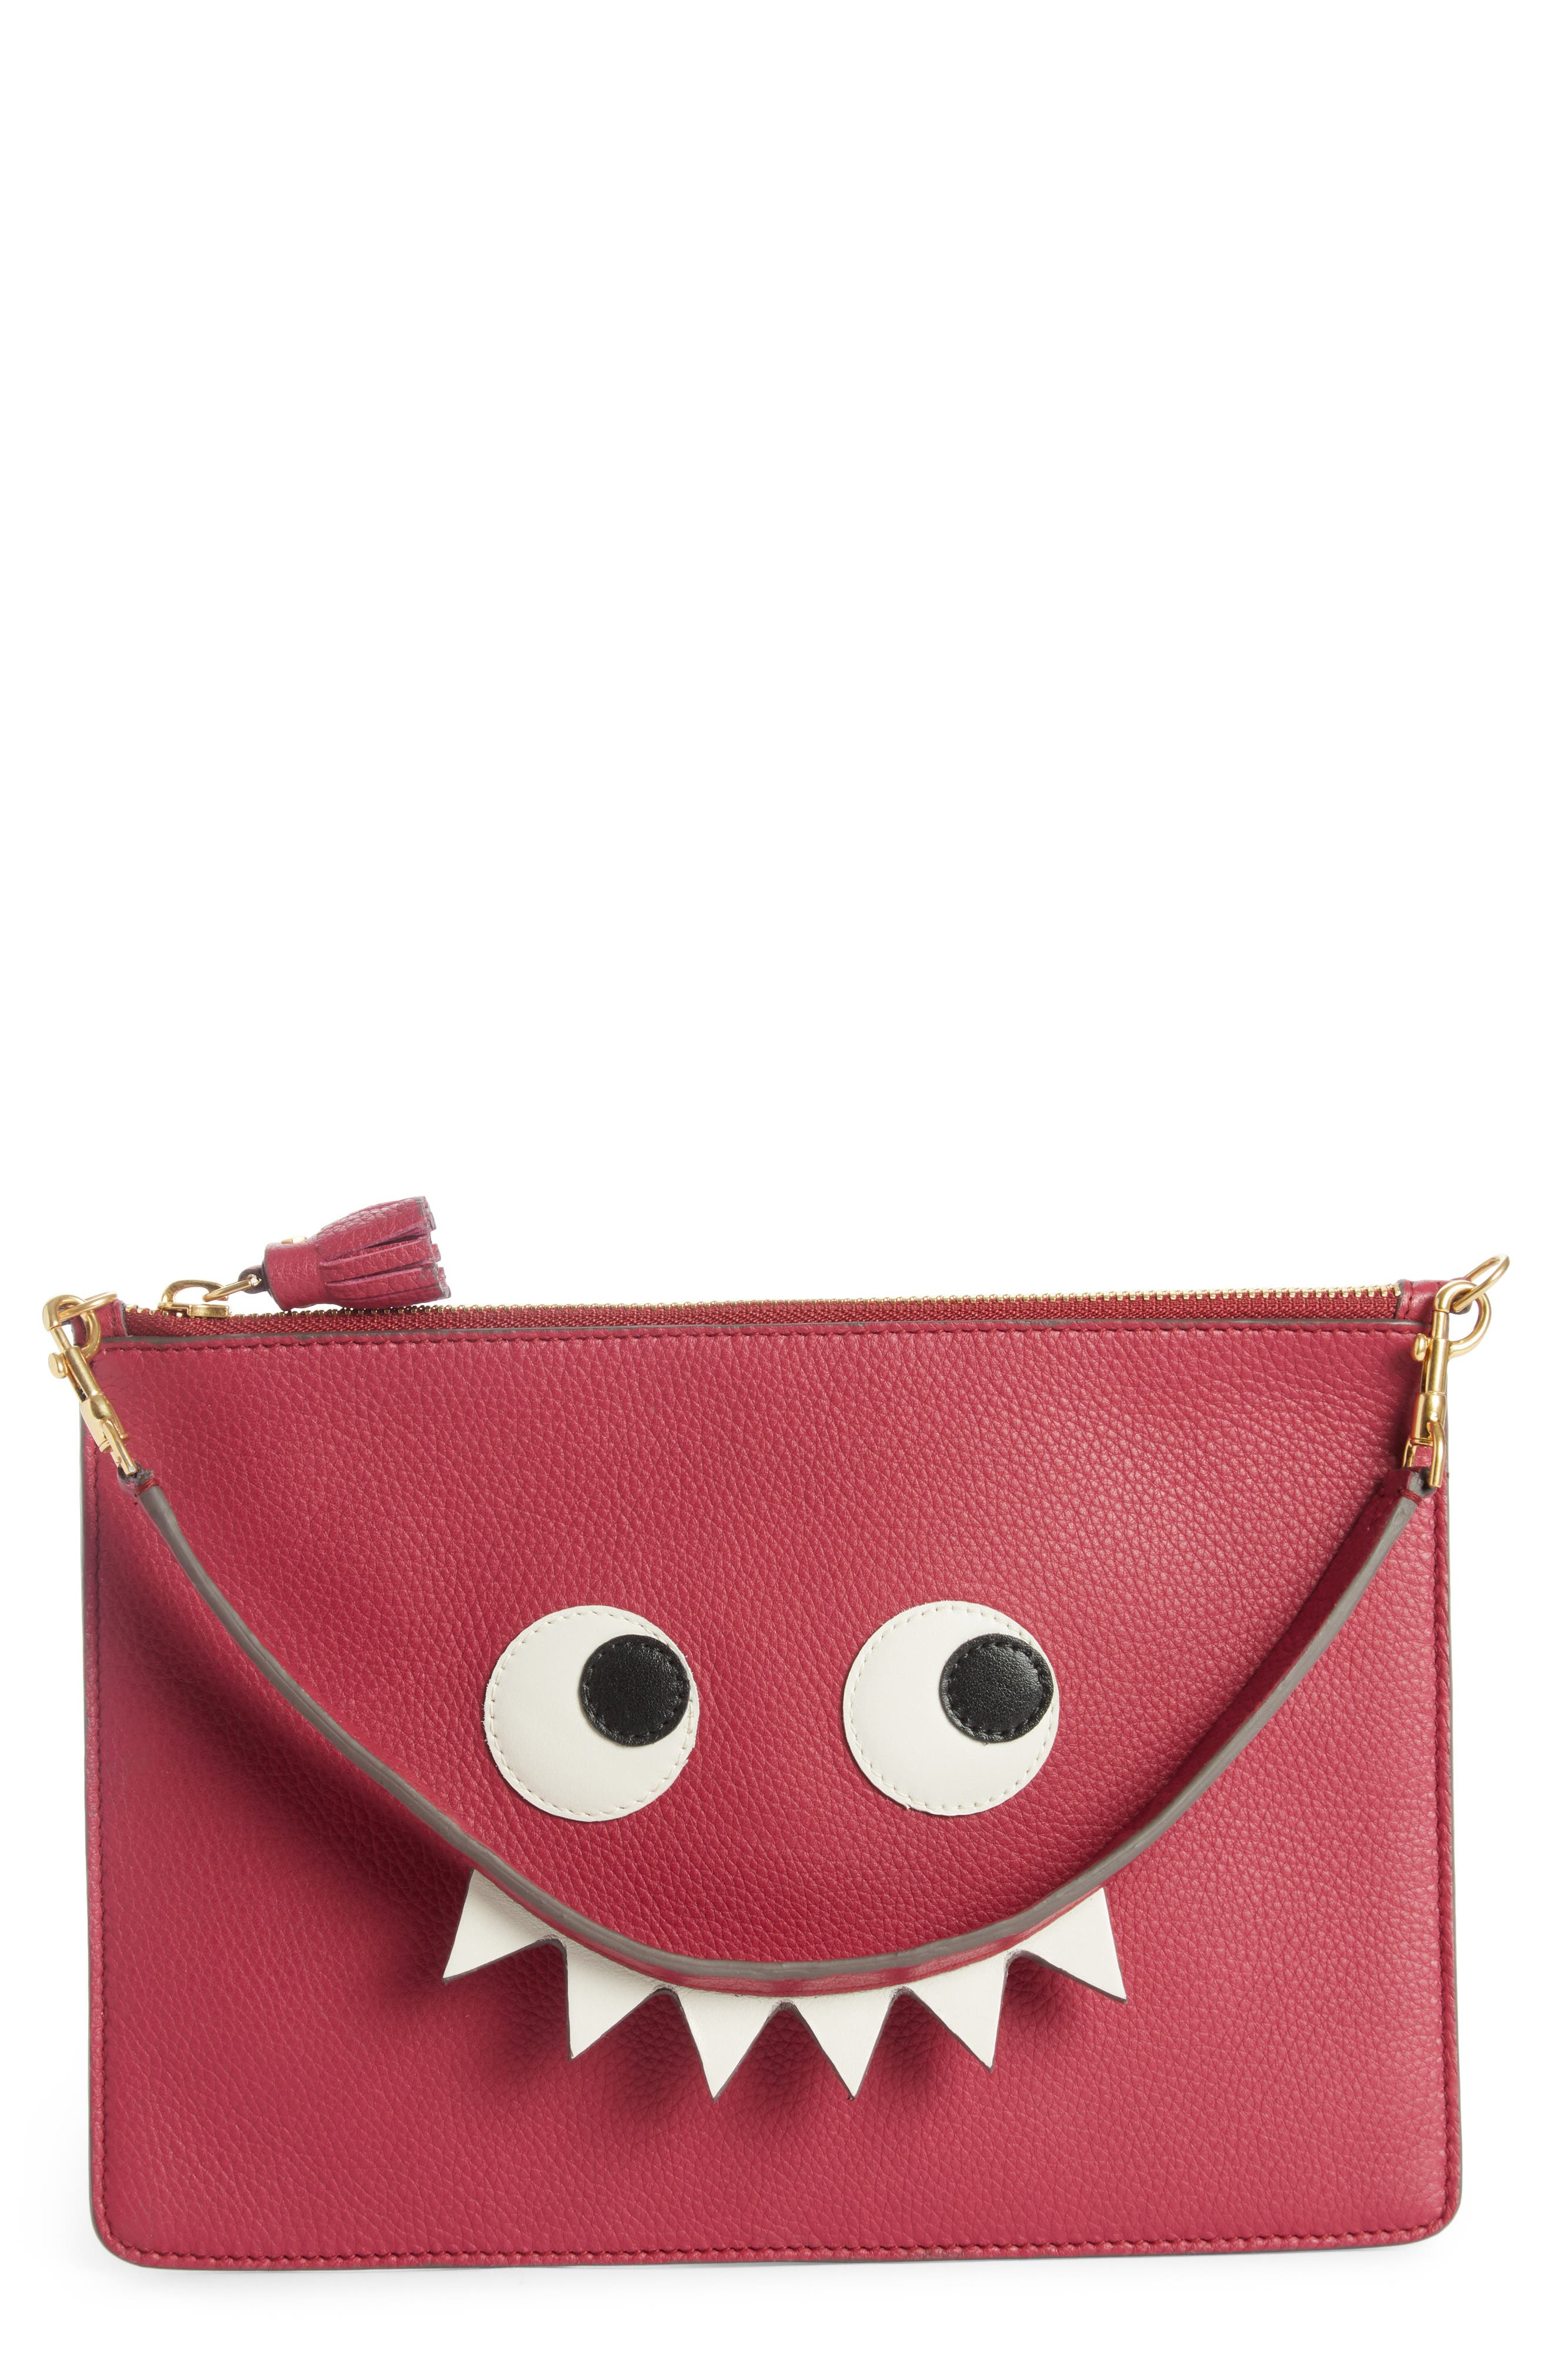 Main Image - Anya Hindmarch Eyes Leather Zip Pouch